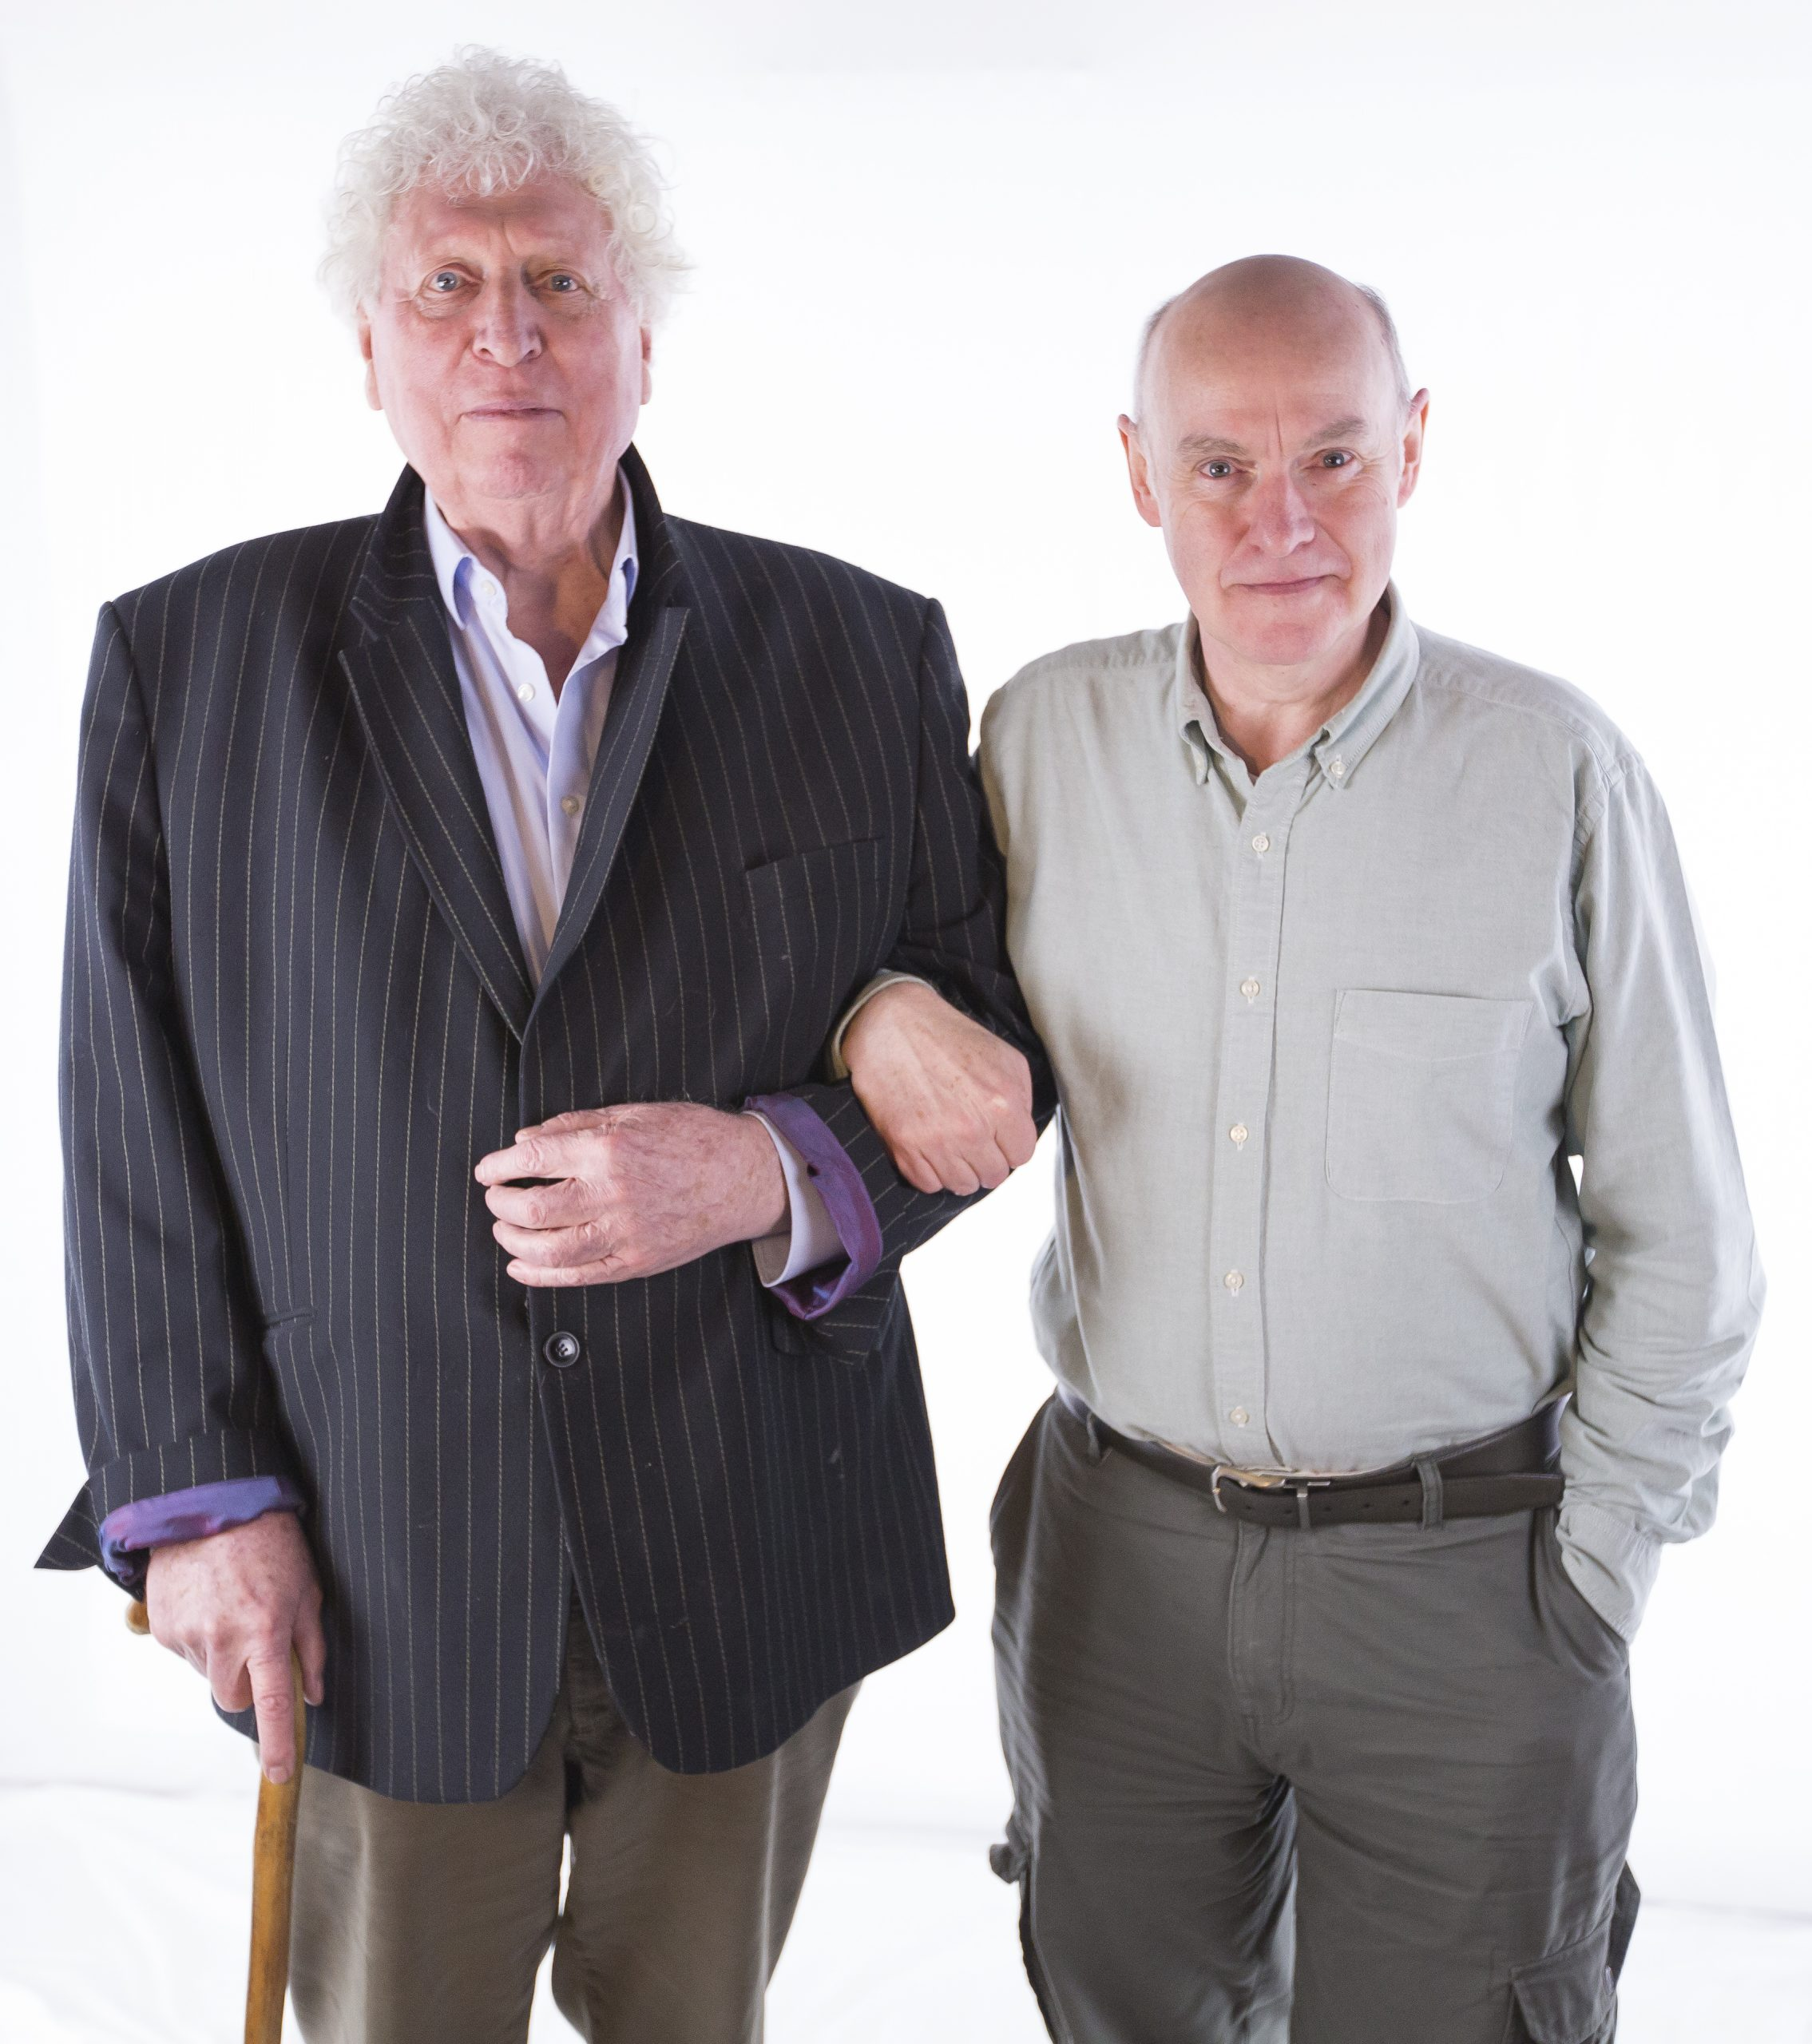 Philip Hinchcliffe, Doctor Who producer (Season 12-14) and the mind behind Philip Hinchcliffe Presents (c) Big Finish Productions